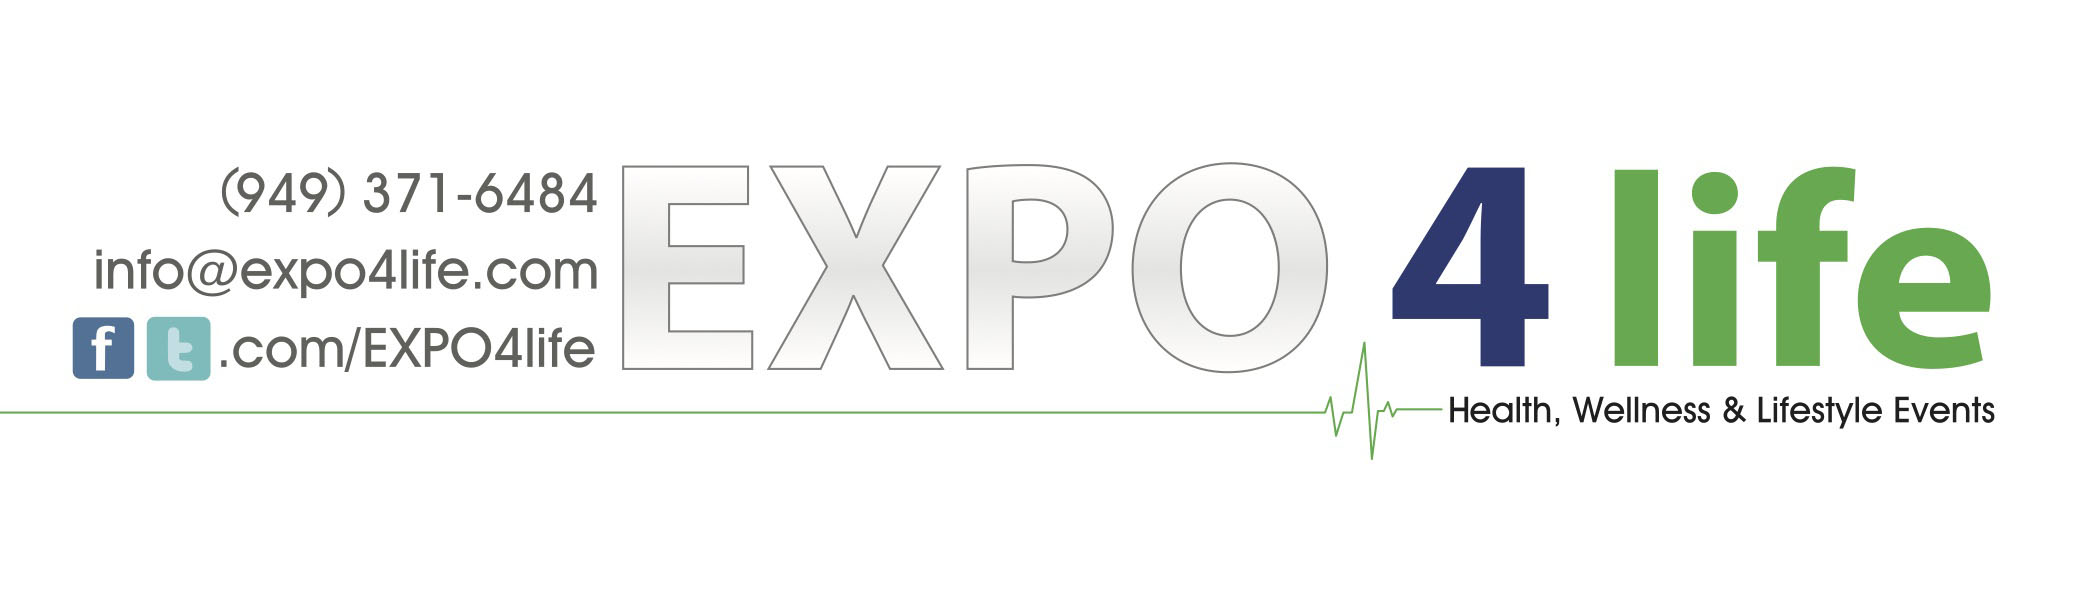 EXPO 4 Life Events and Marketing